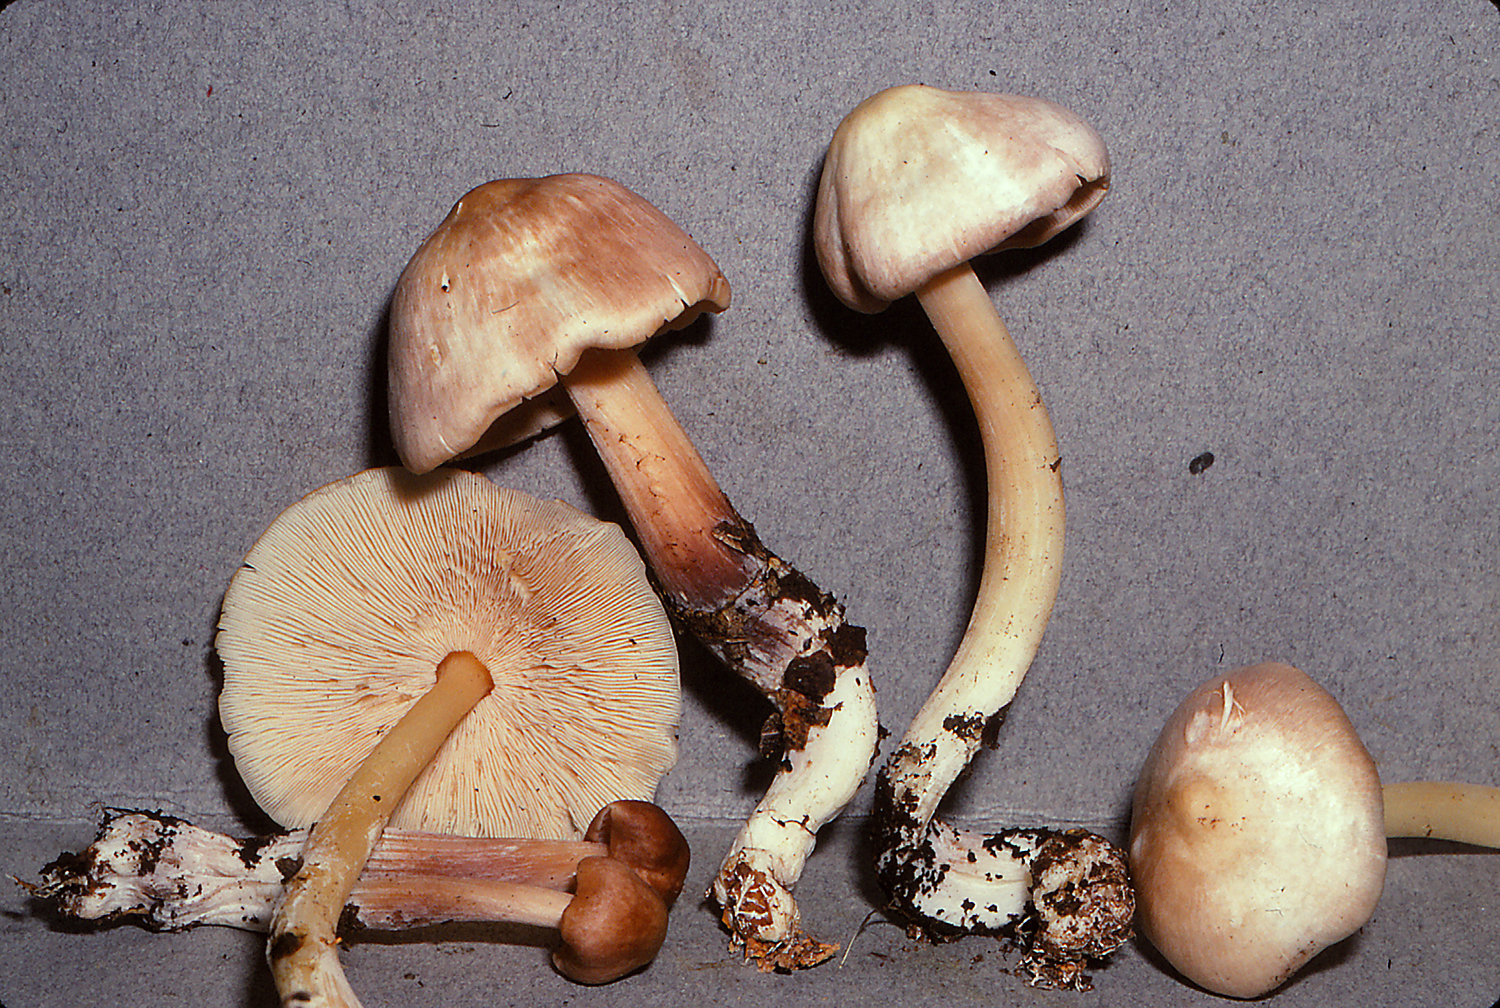 Rhodocollybia pandipes